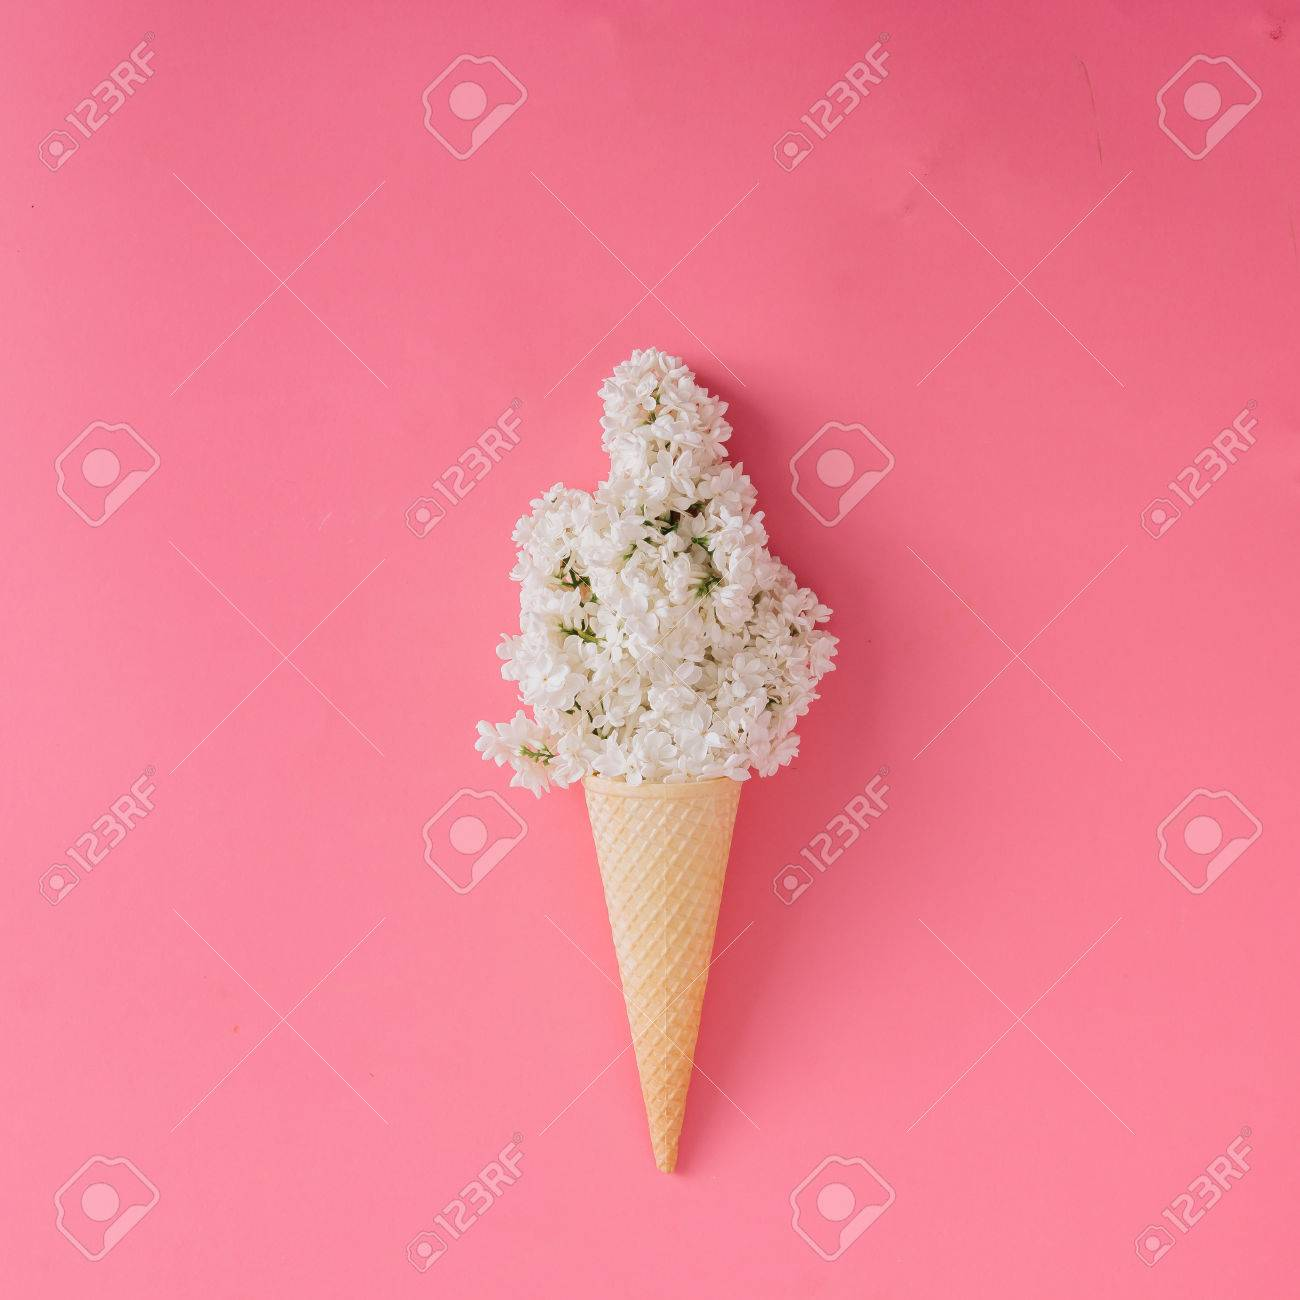 Lilac flower in ice cream cone on pink background. Minimal concept. Flat lay. - 70796725